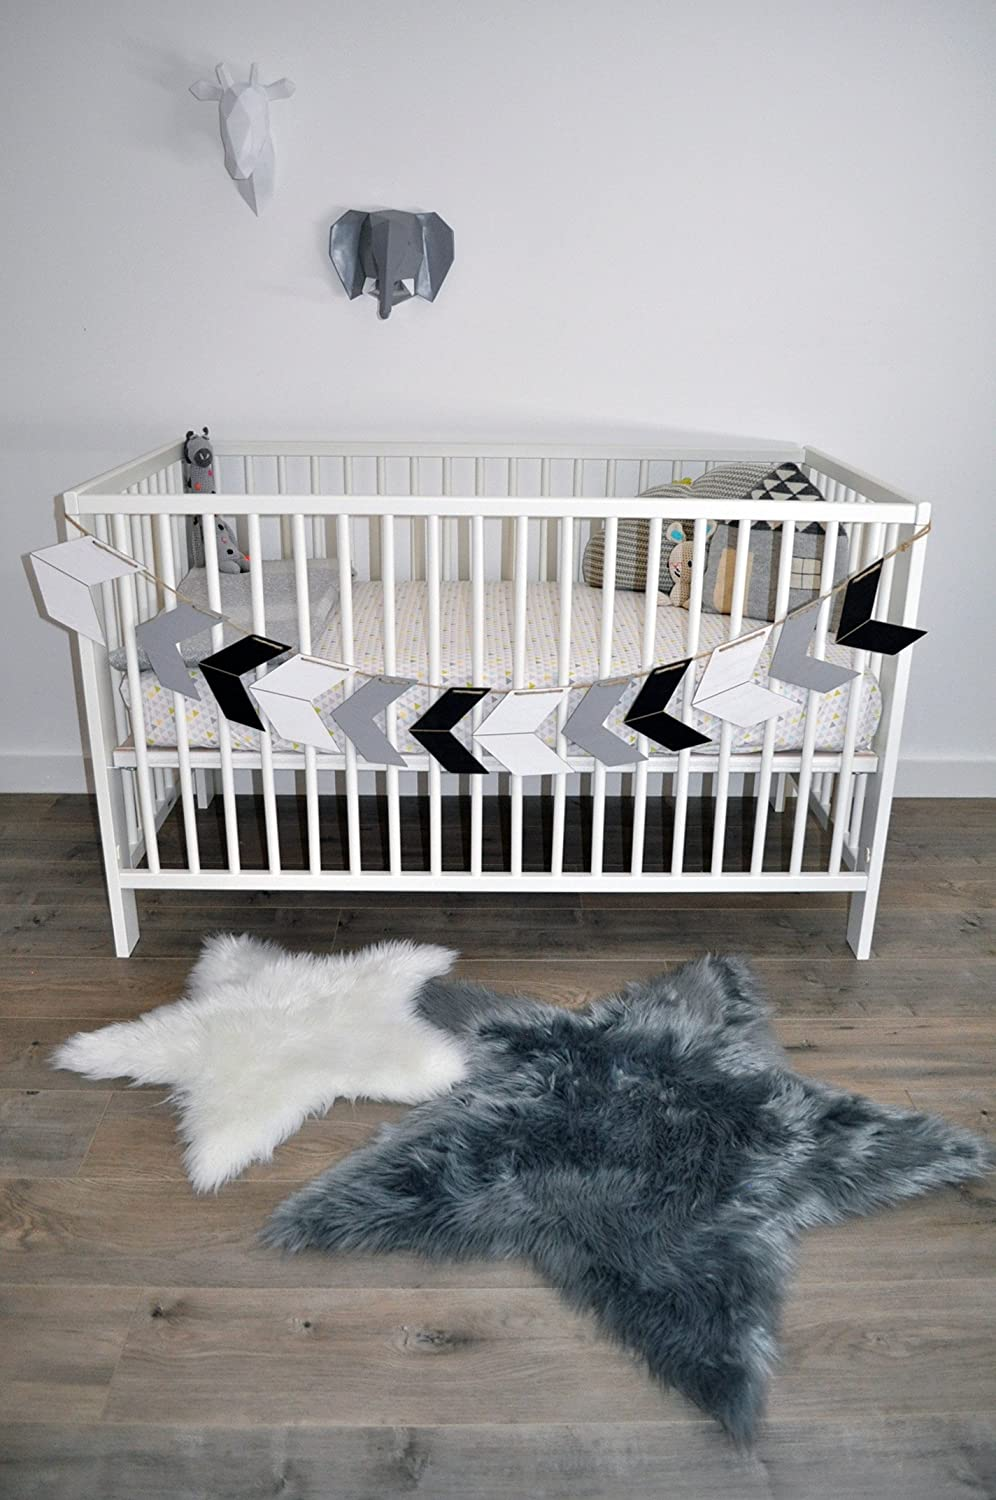 playroom Machine Washable Faux Sheepskin Grey Star Area Rug 3 x 3 Perfect for babys room Star Large Grey Soft and silky nursery